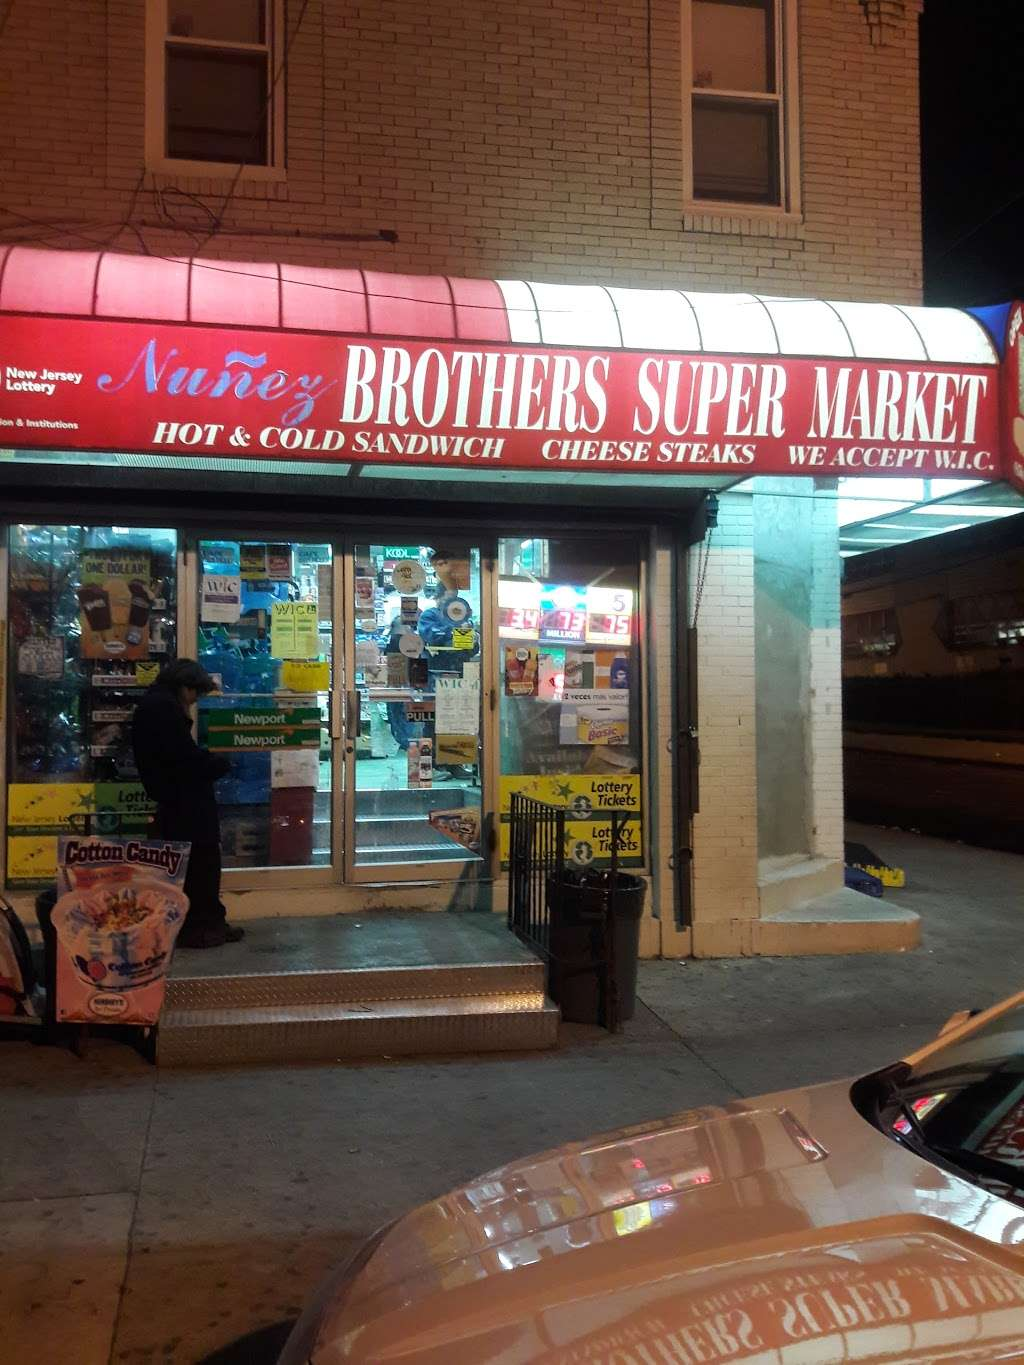 Nunez Brothers - store  | Photo 1 of 7 | Address: 946 S 4th St, Camden, NJ 08103, USA | Phone: (856) 541-5718